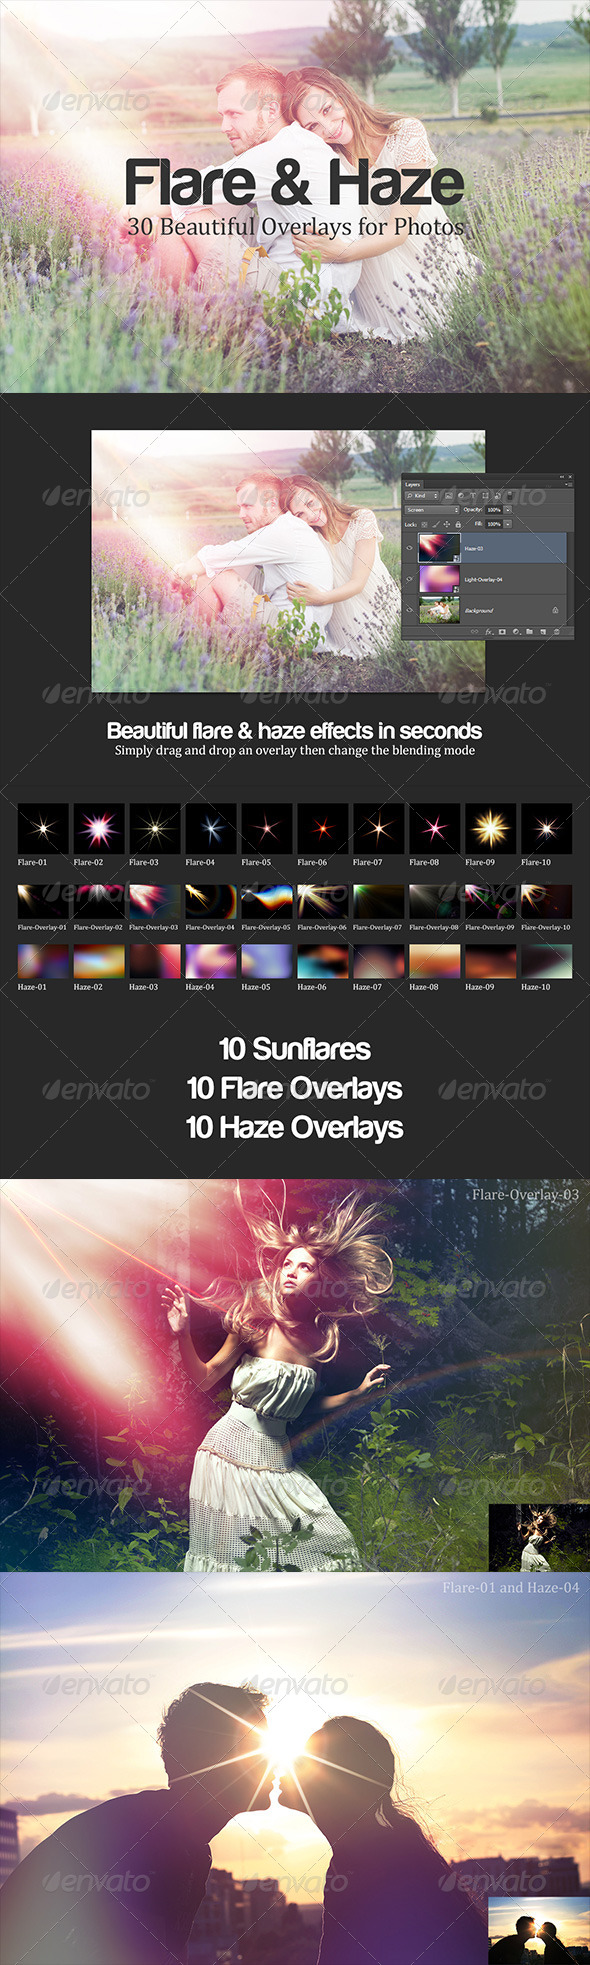 GraphicRiver Flare & Haze 30 Overlays for Photos 6199654